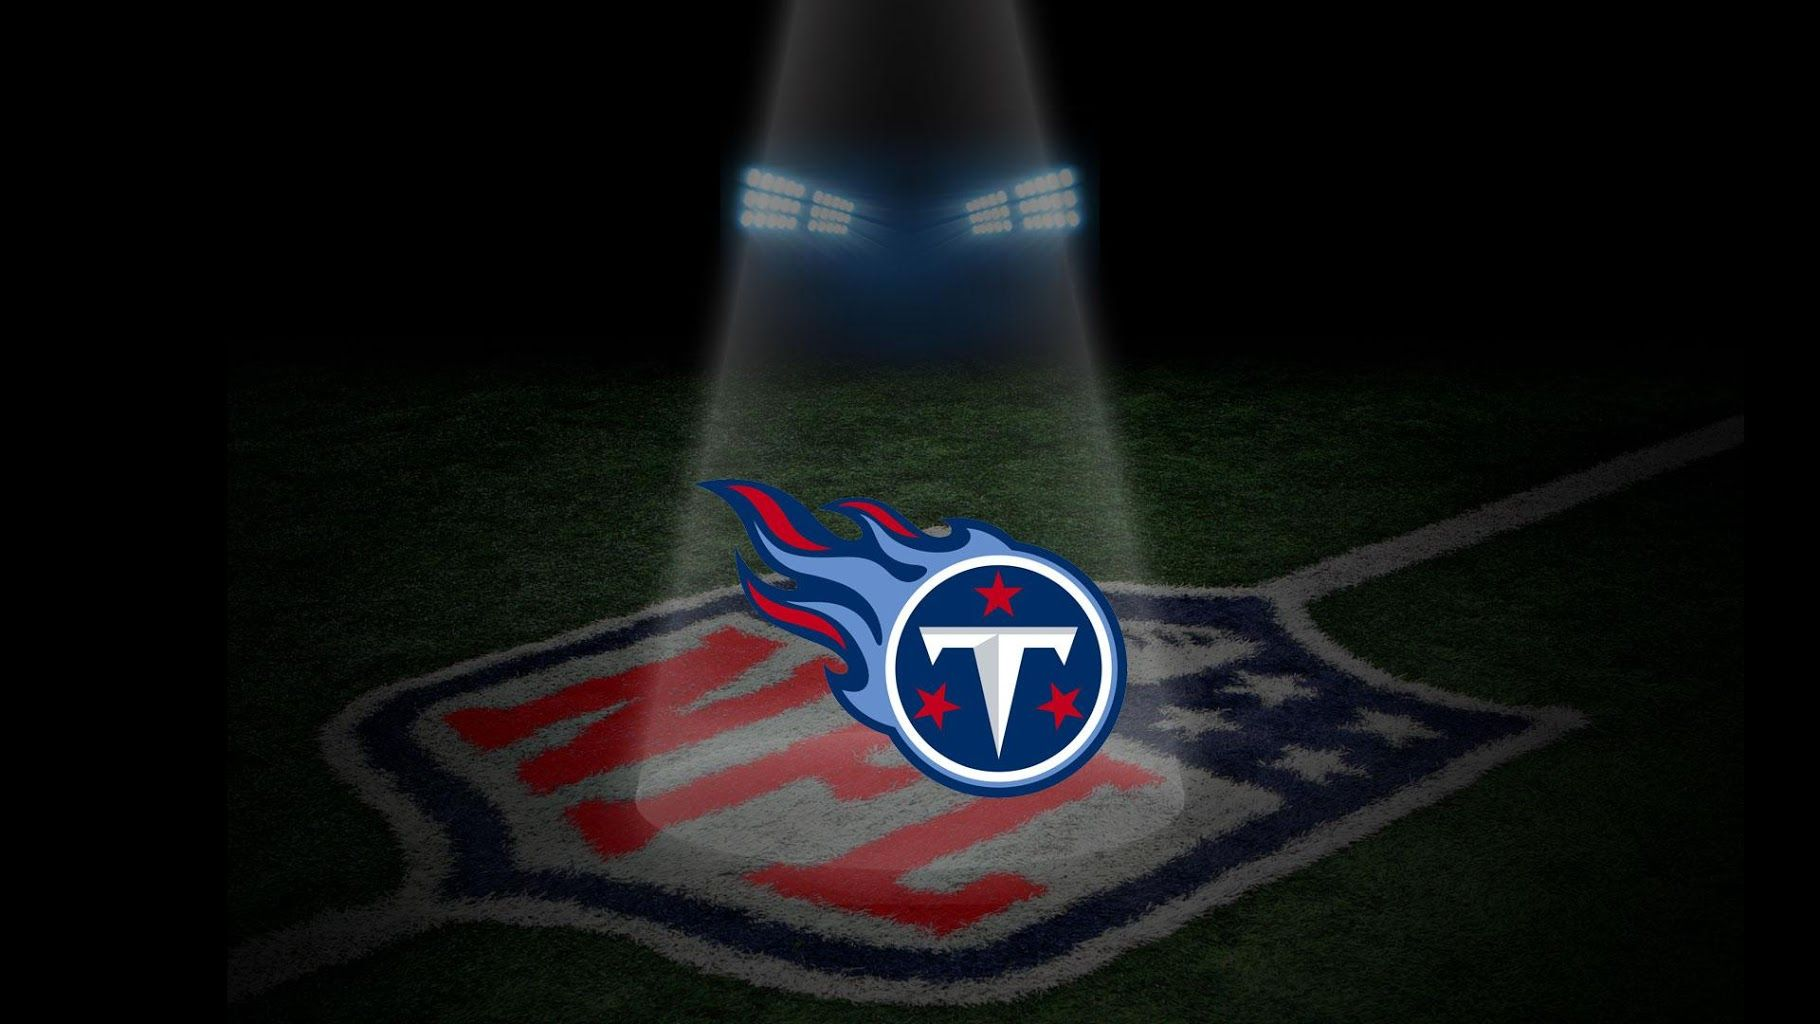 Tennessee Titans Wallpaper by Mathilda Shellhammer PC.52-RSY